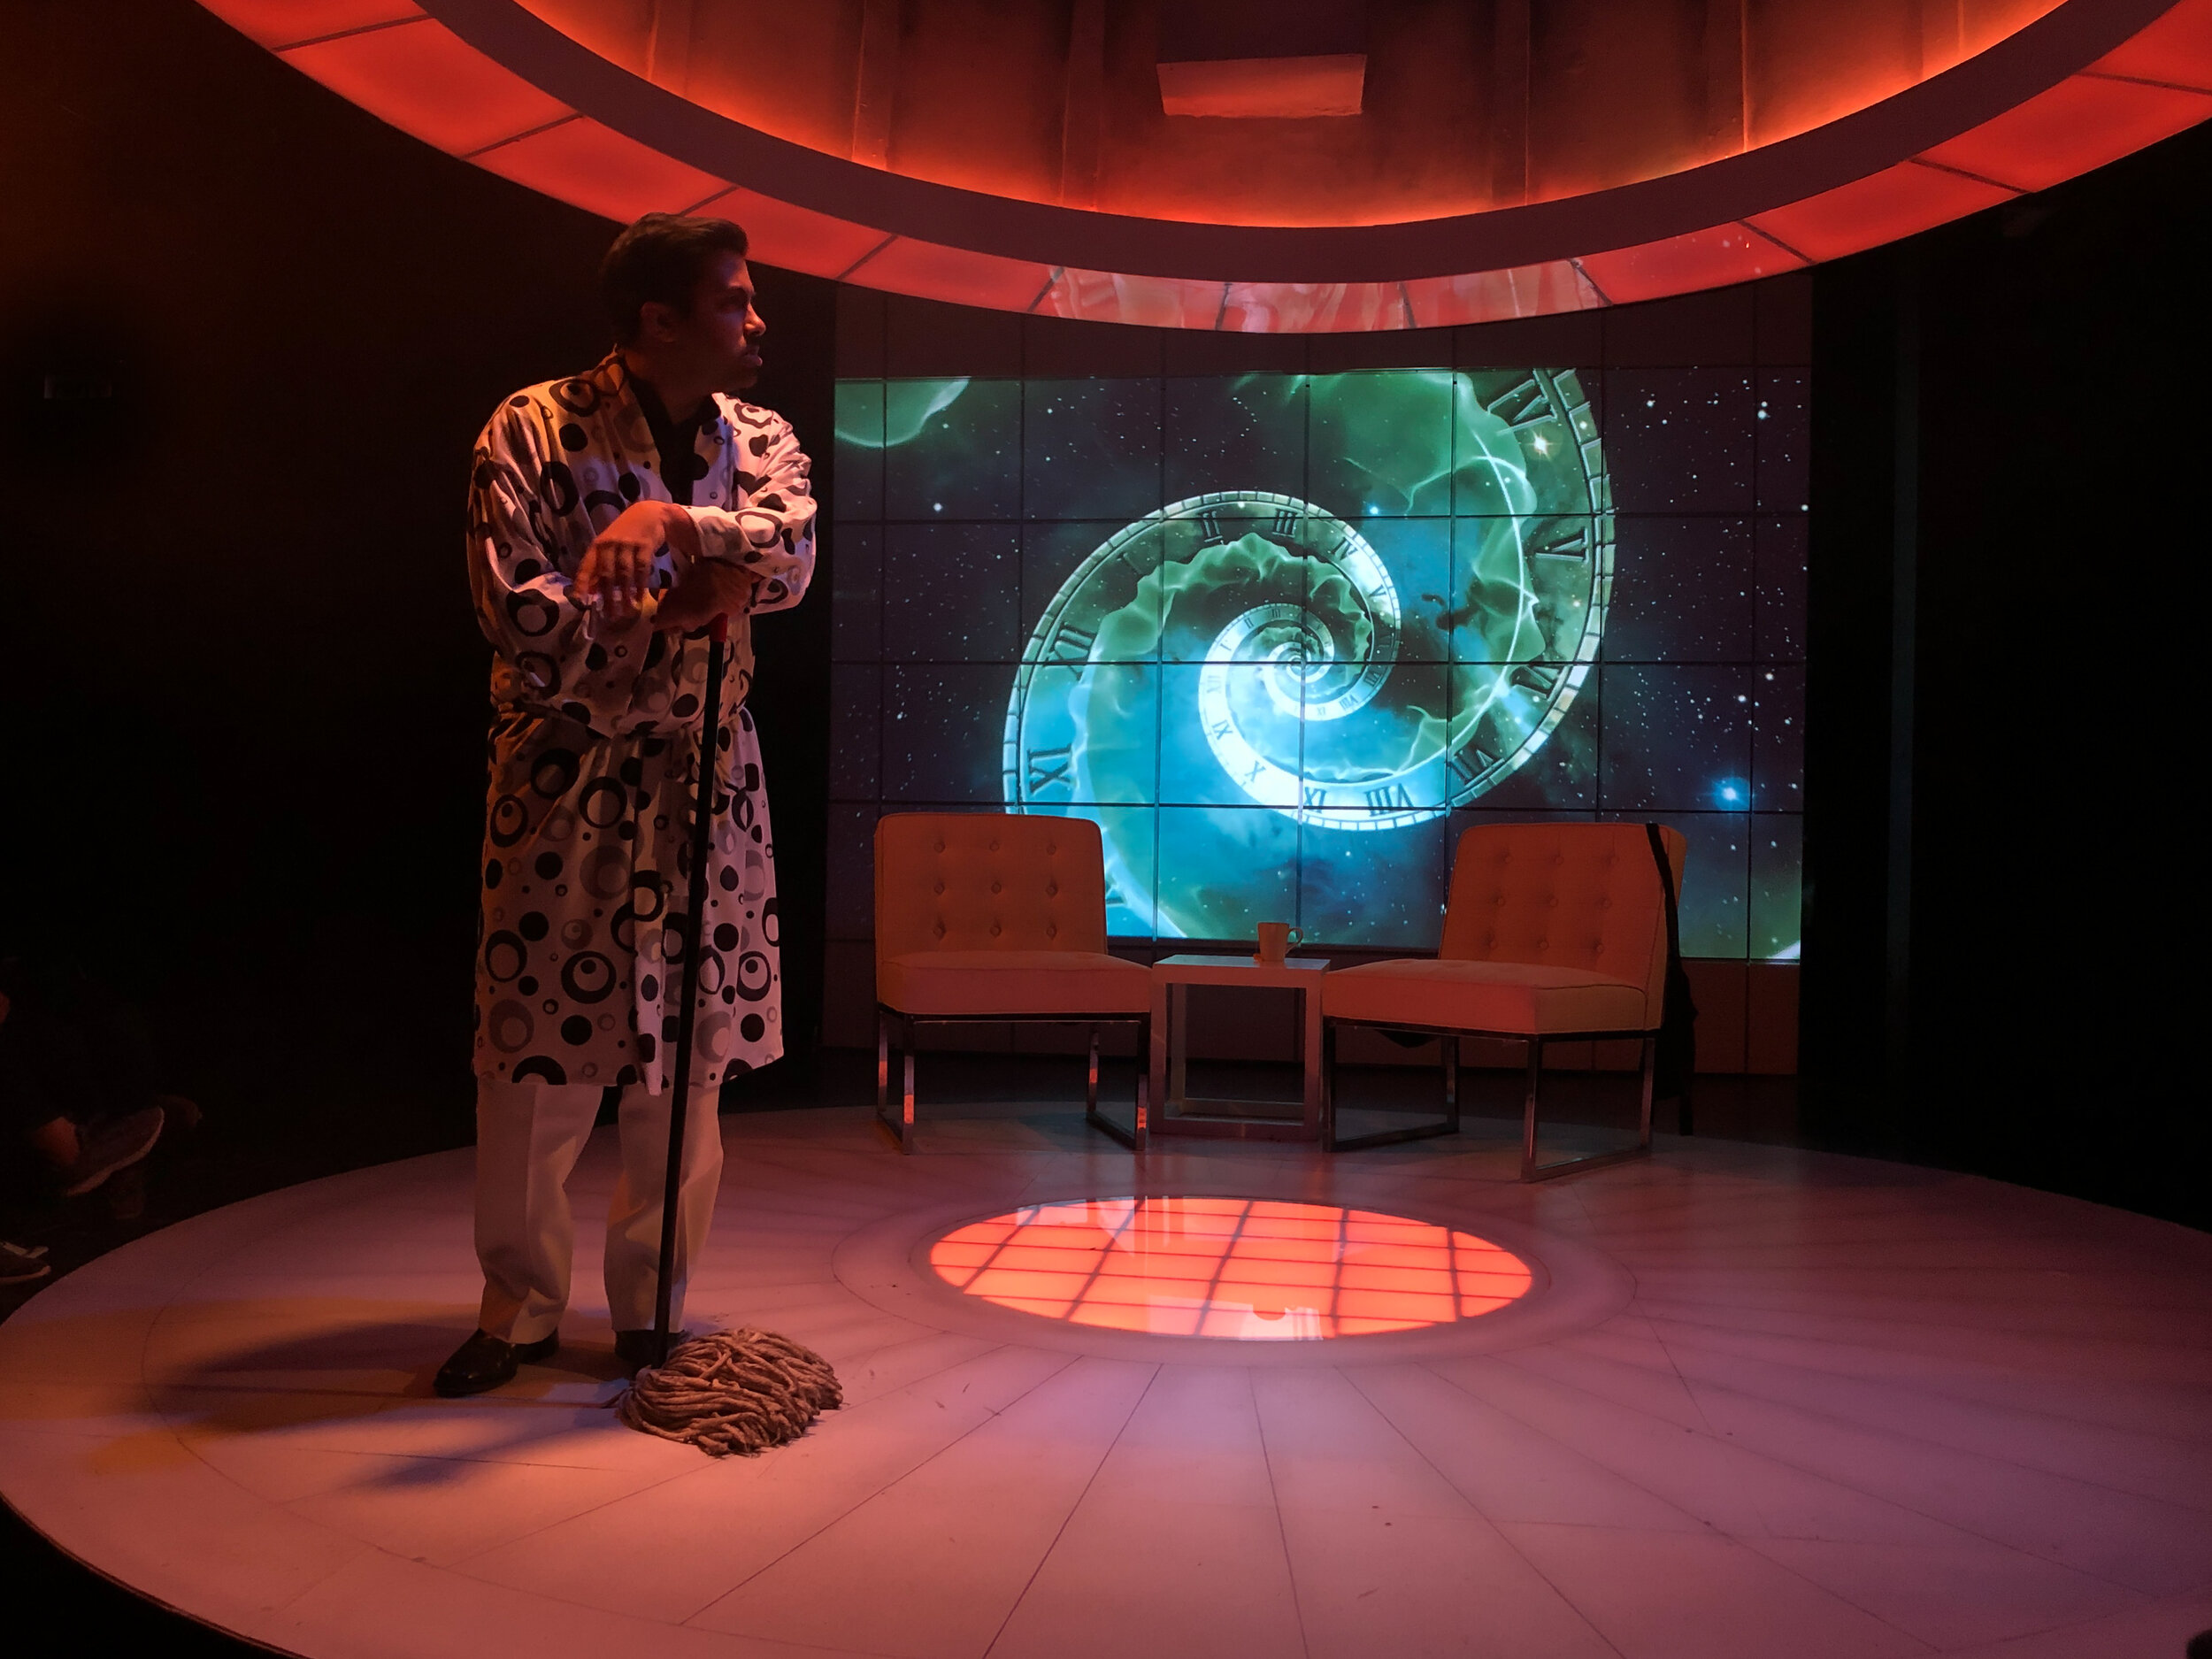 Mosquitoes by Lucy Kirkwood at the Steep Theatre October 2019. Projections Design/ Programming by Stephan Mazurek.